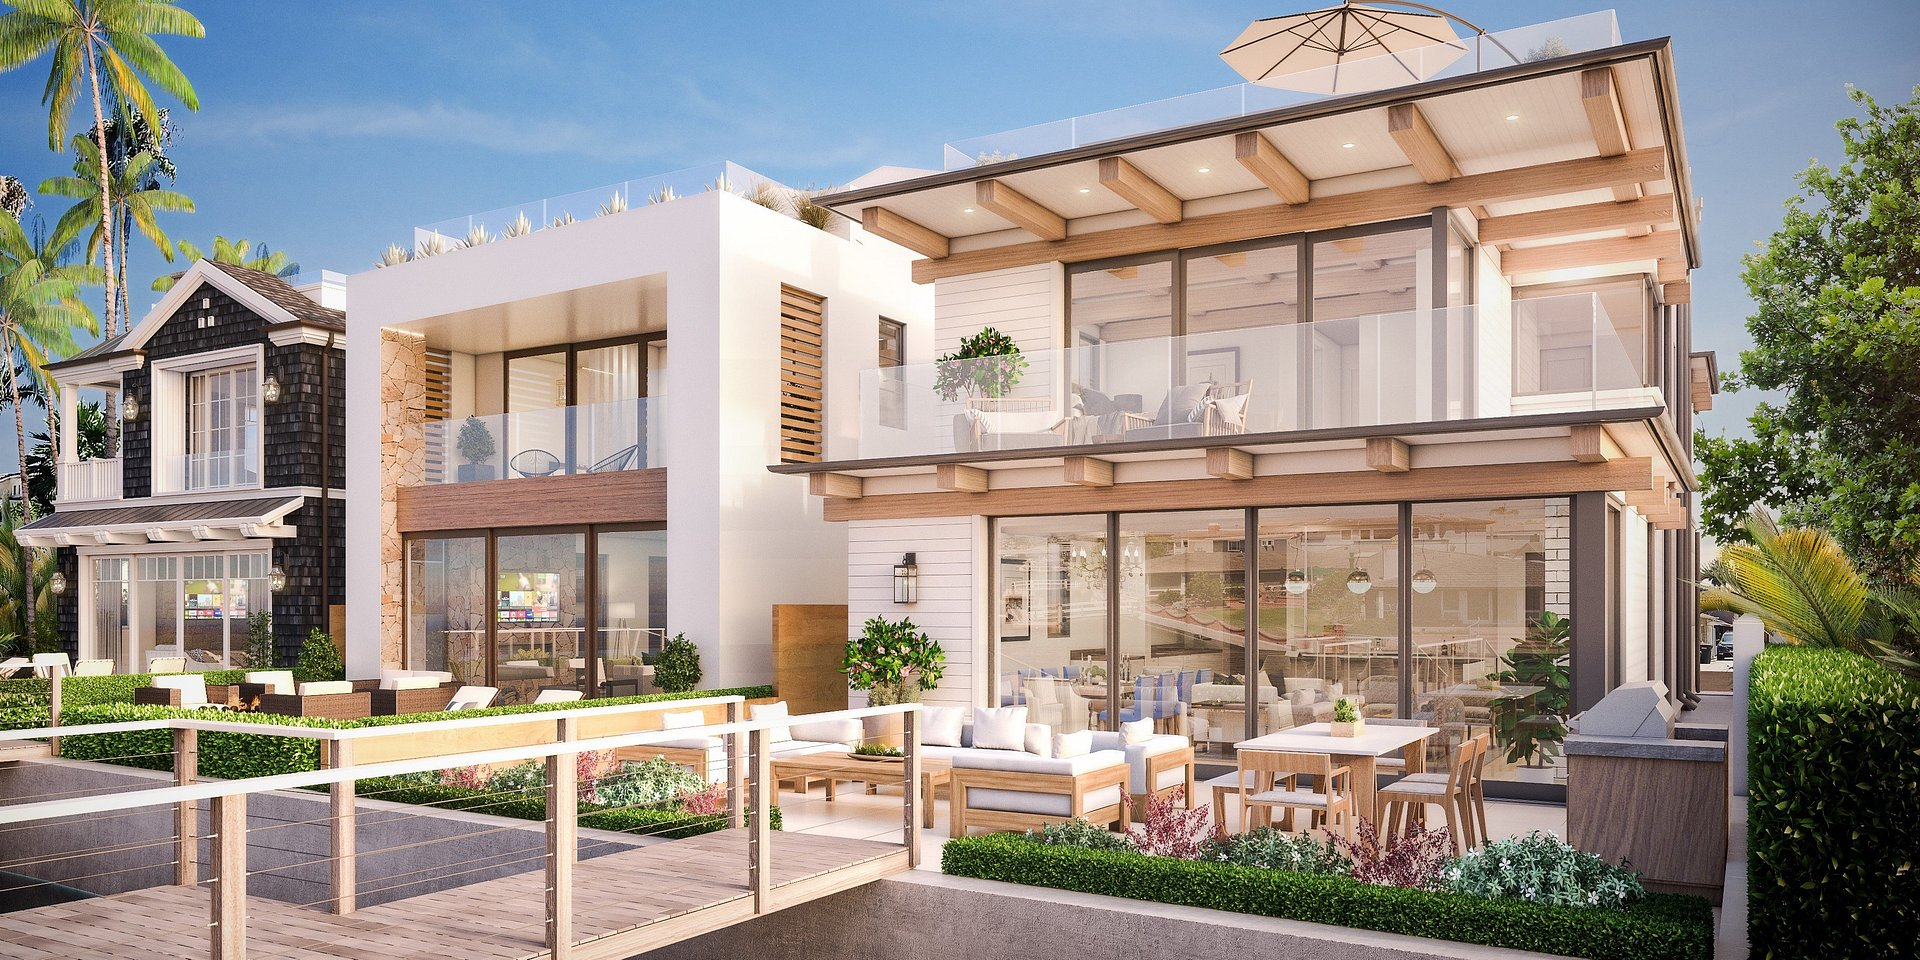 Coldwell Banker Residential Brokerage Lists New Waterfront Newport Beach Property for $6.299 Million